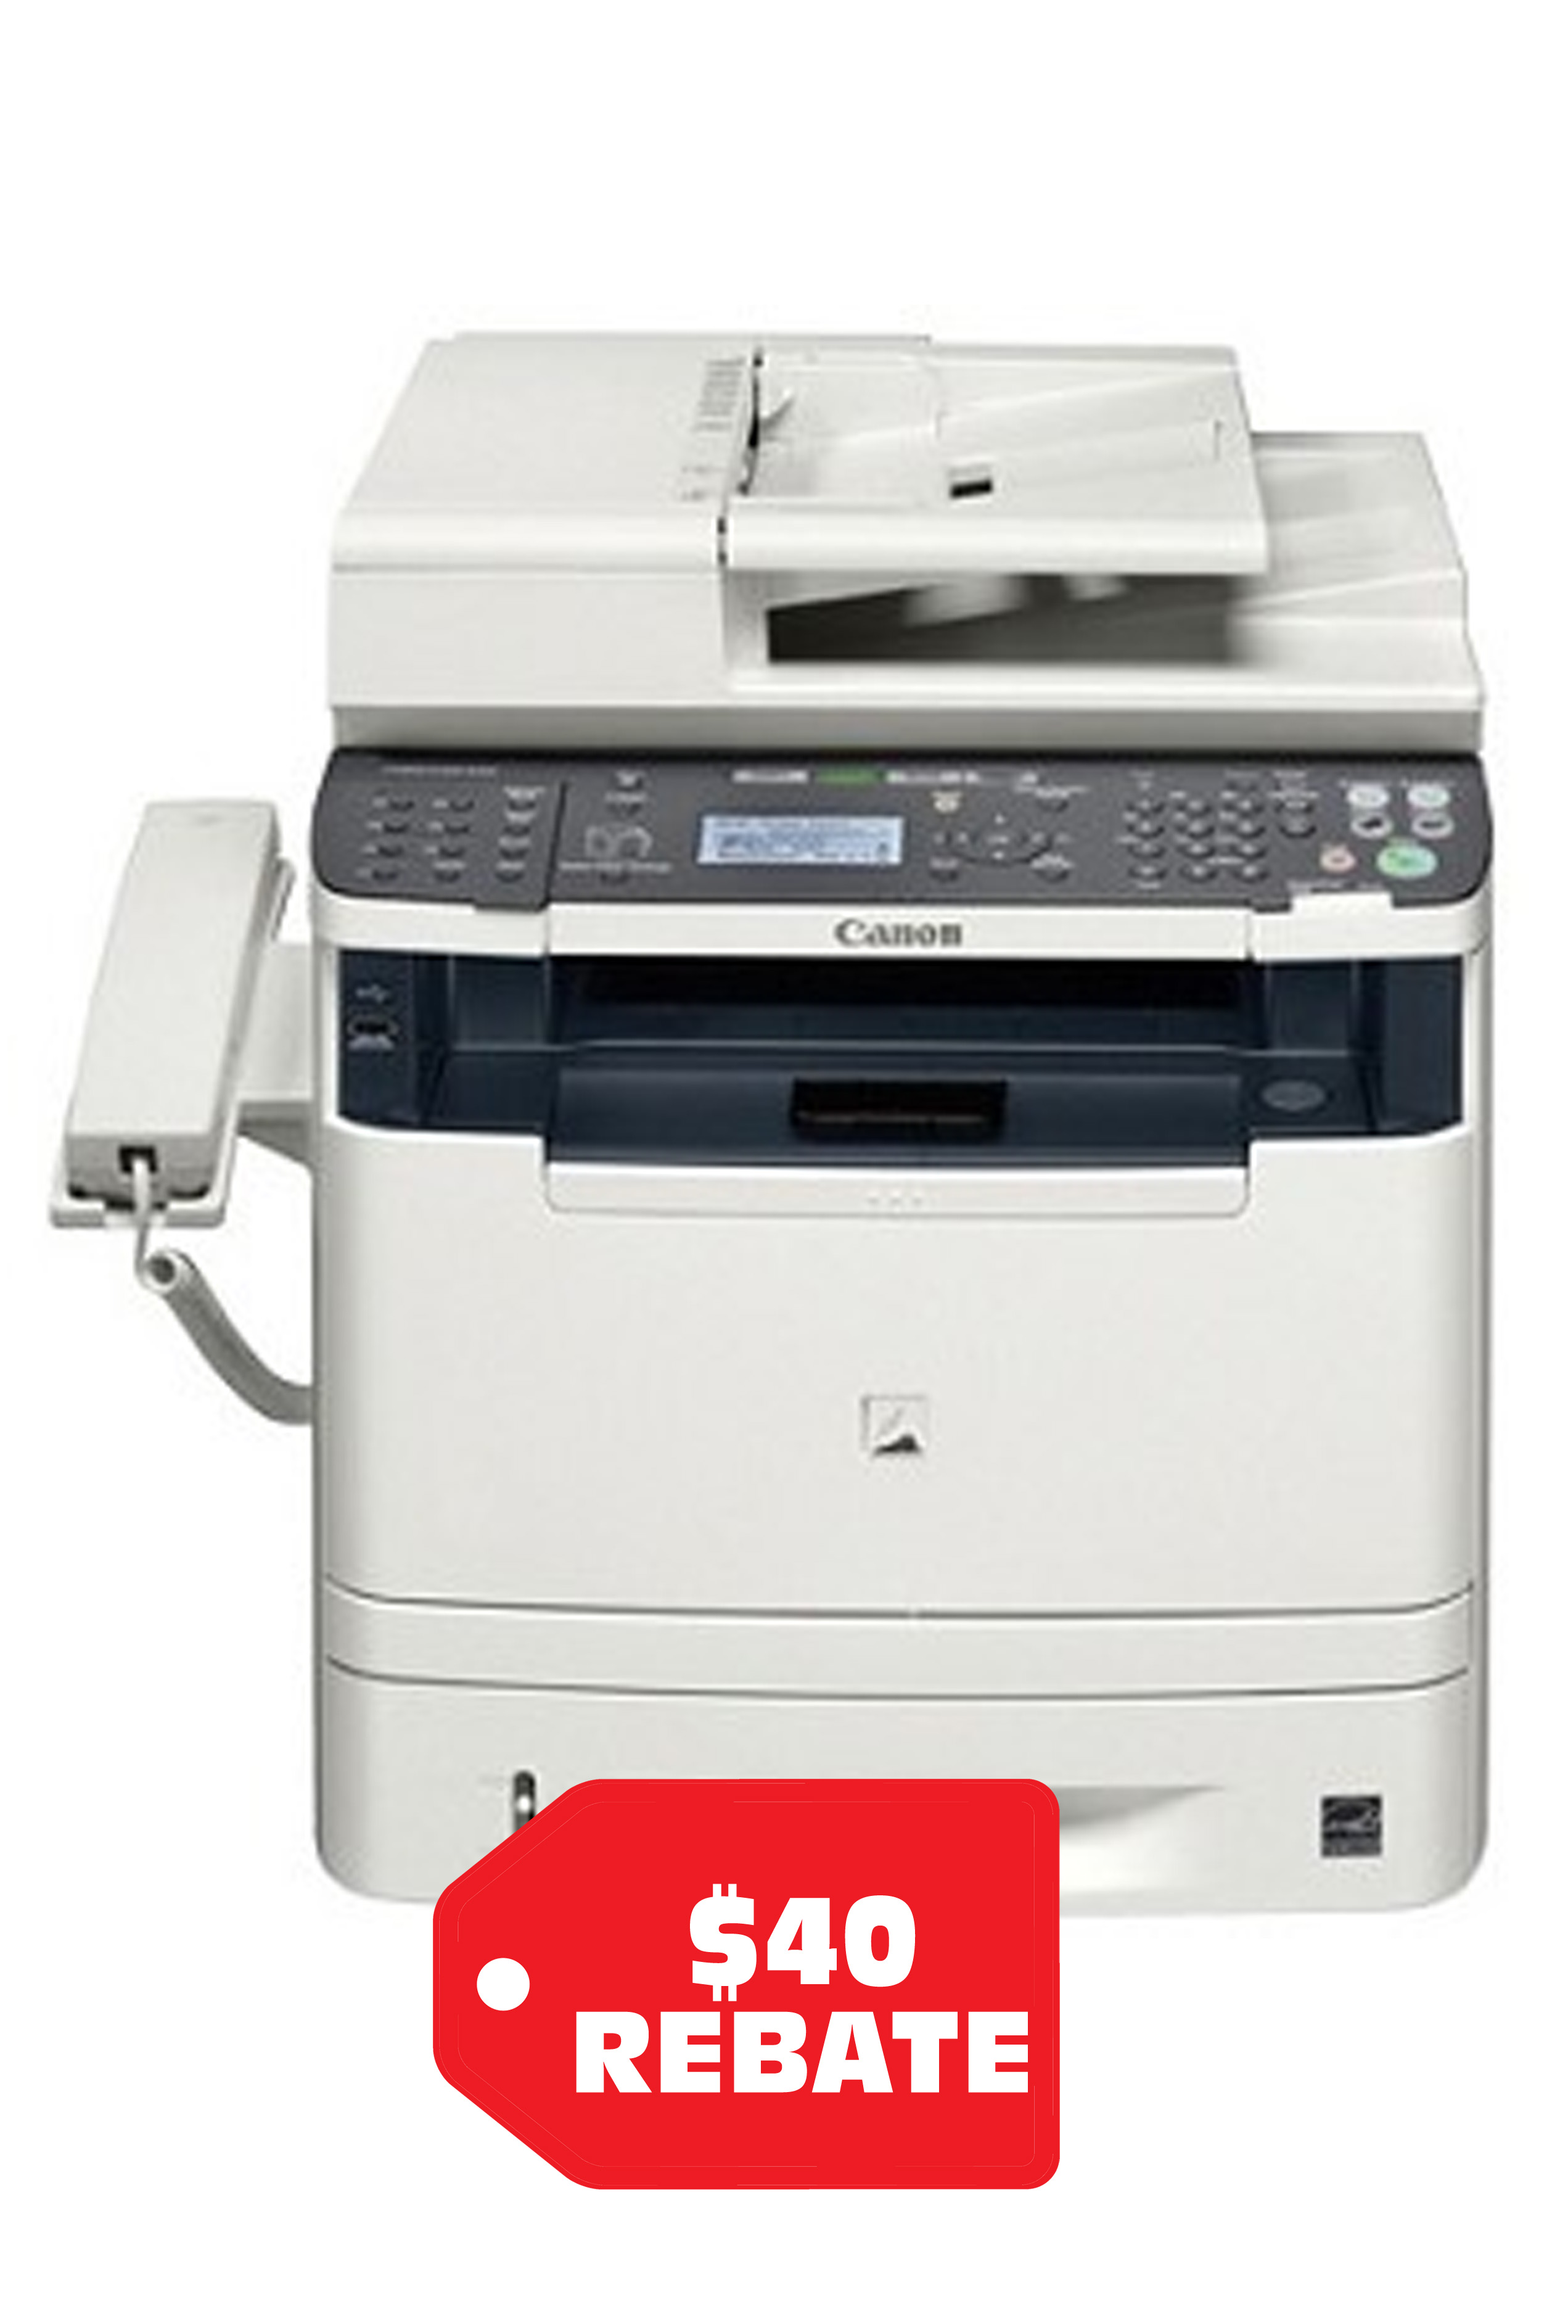 Canon Laser Class 650i (35ppm)